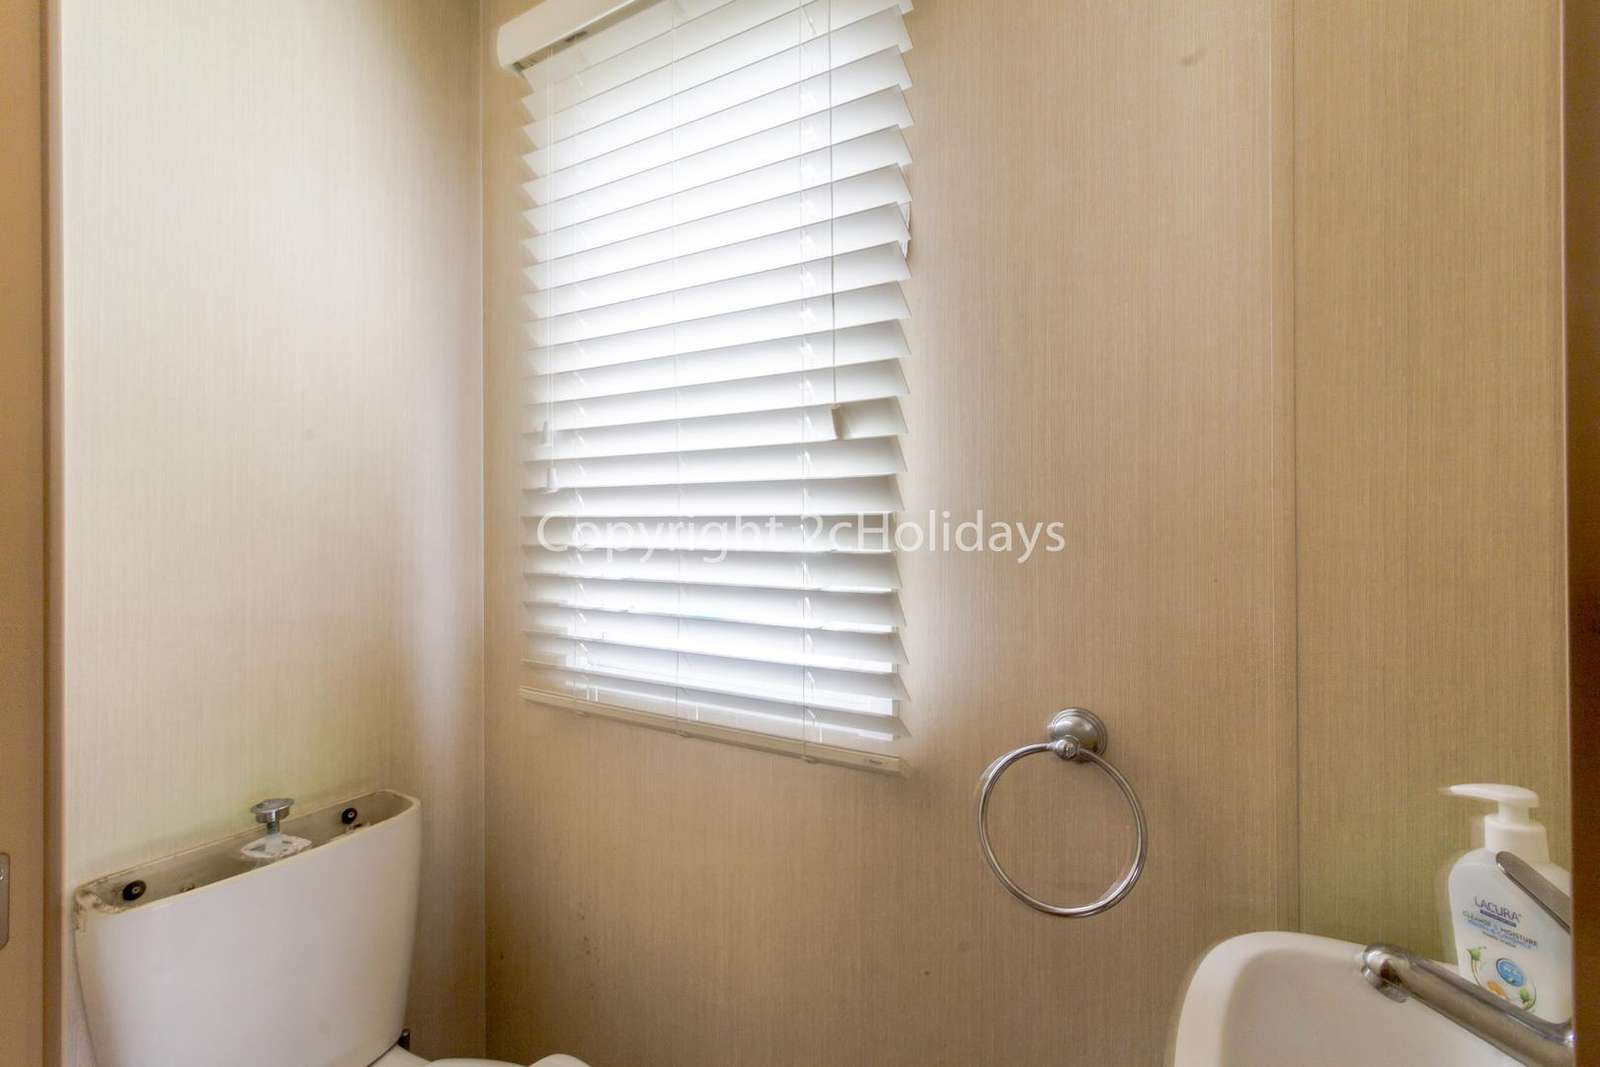 We ensure that all our holiday homes are cleaned a high standard!